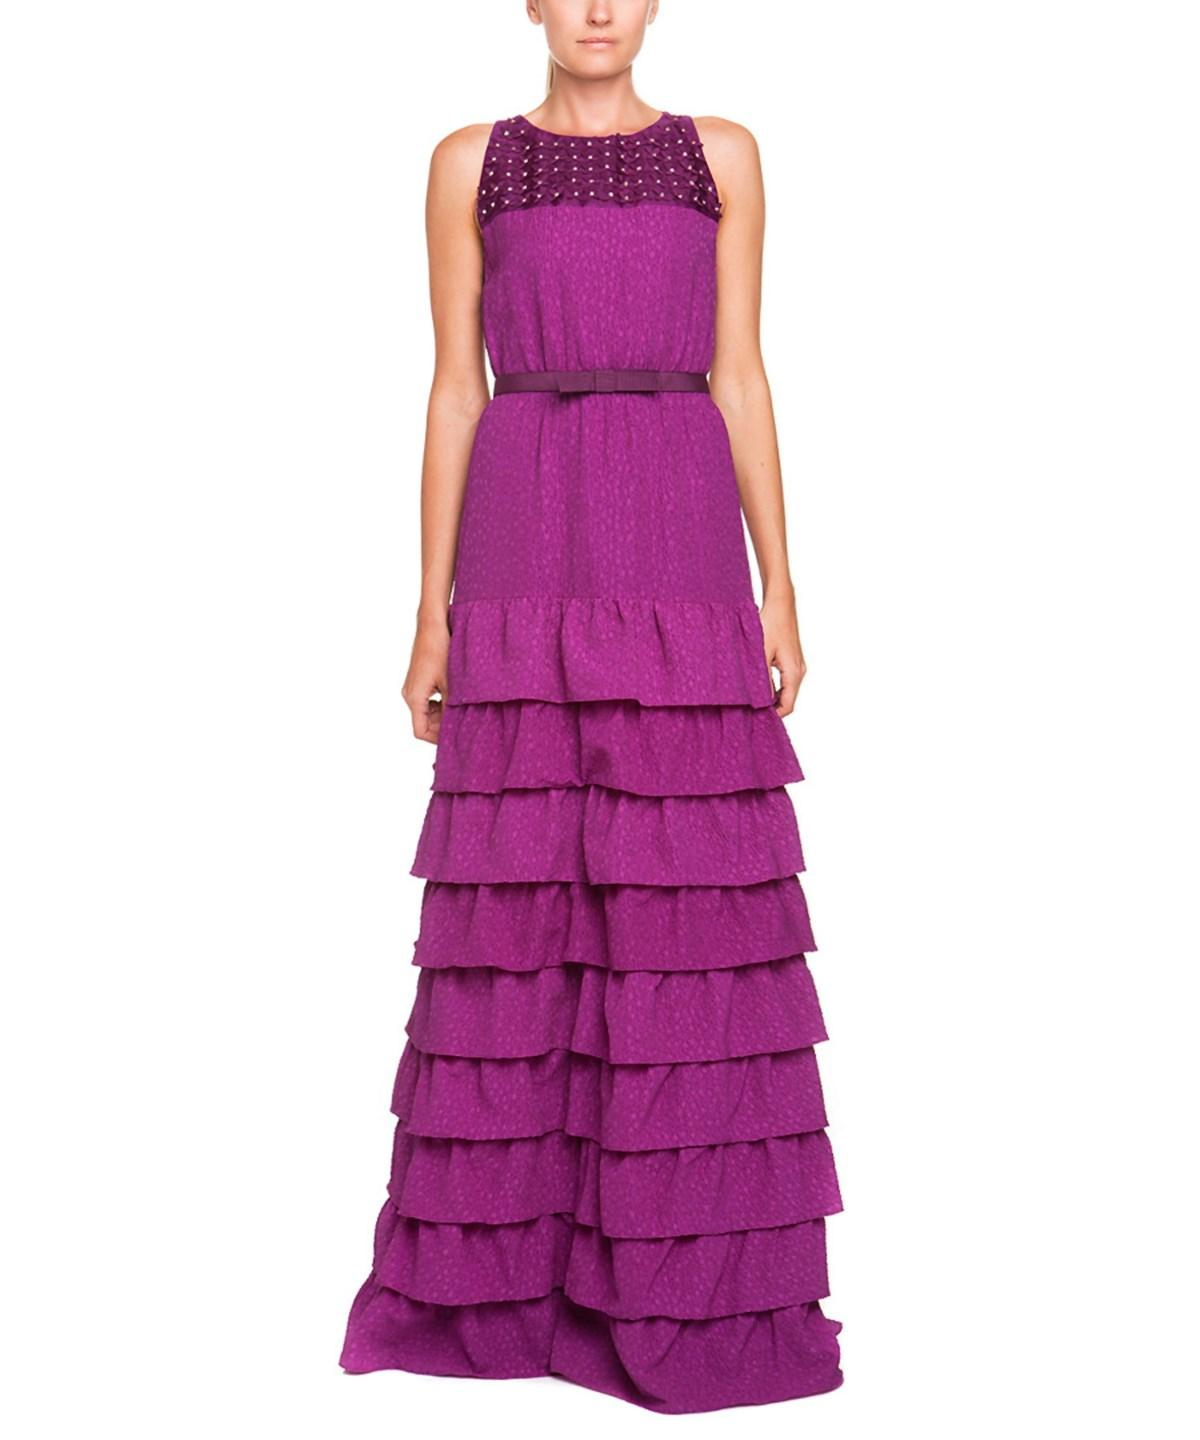 MAXMARA PURPLE RUFFLE BELTED GOWN